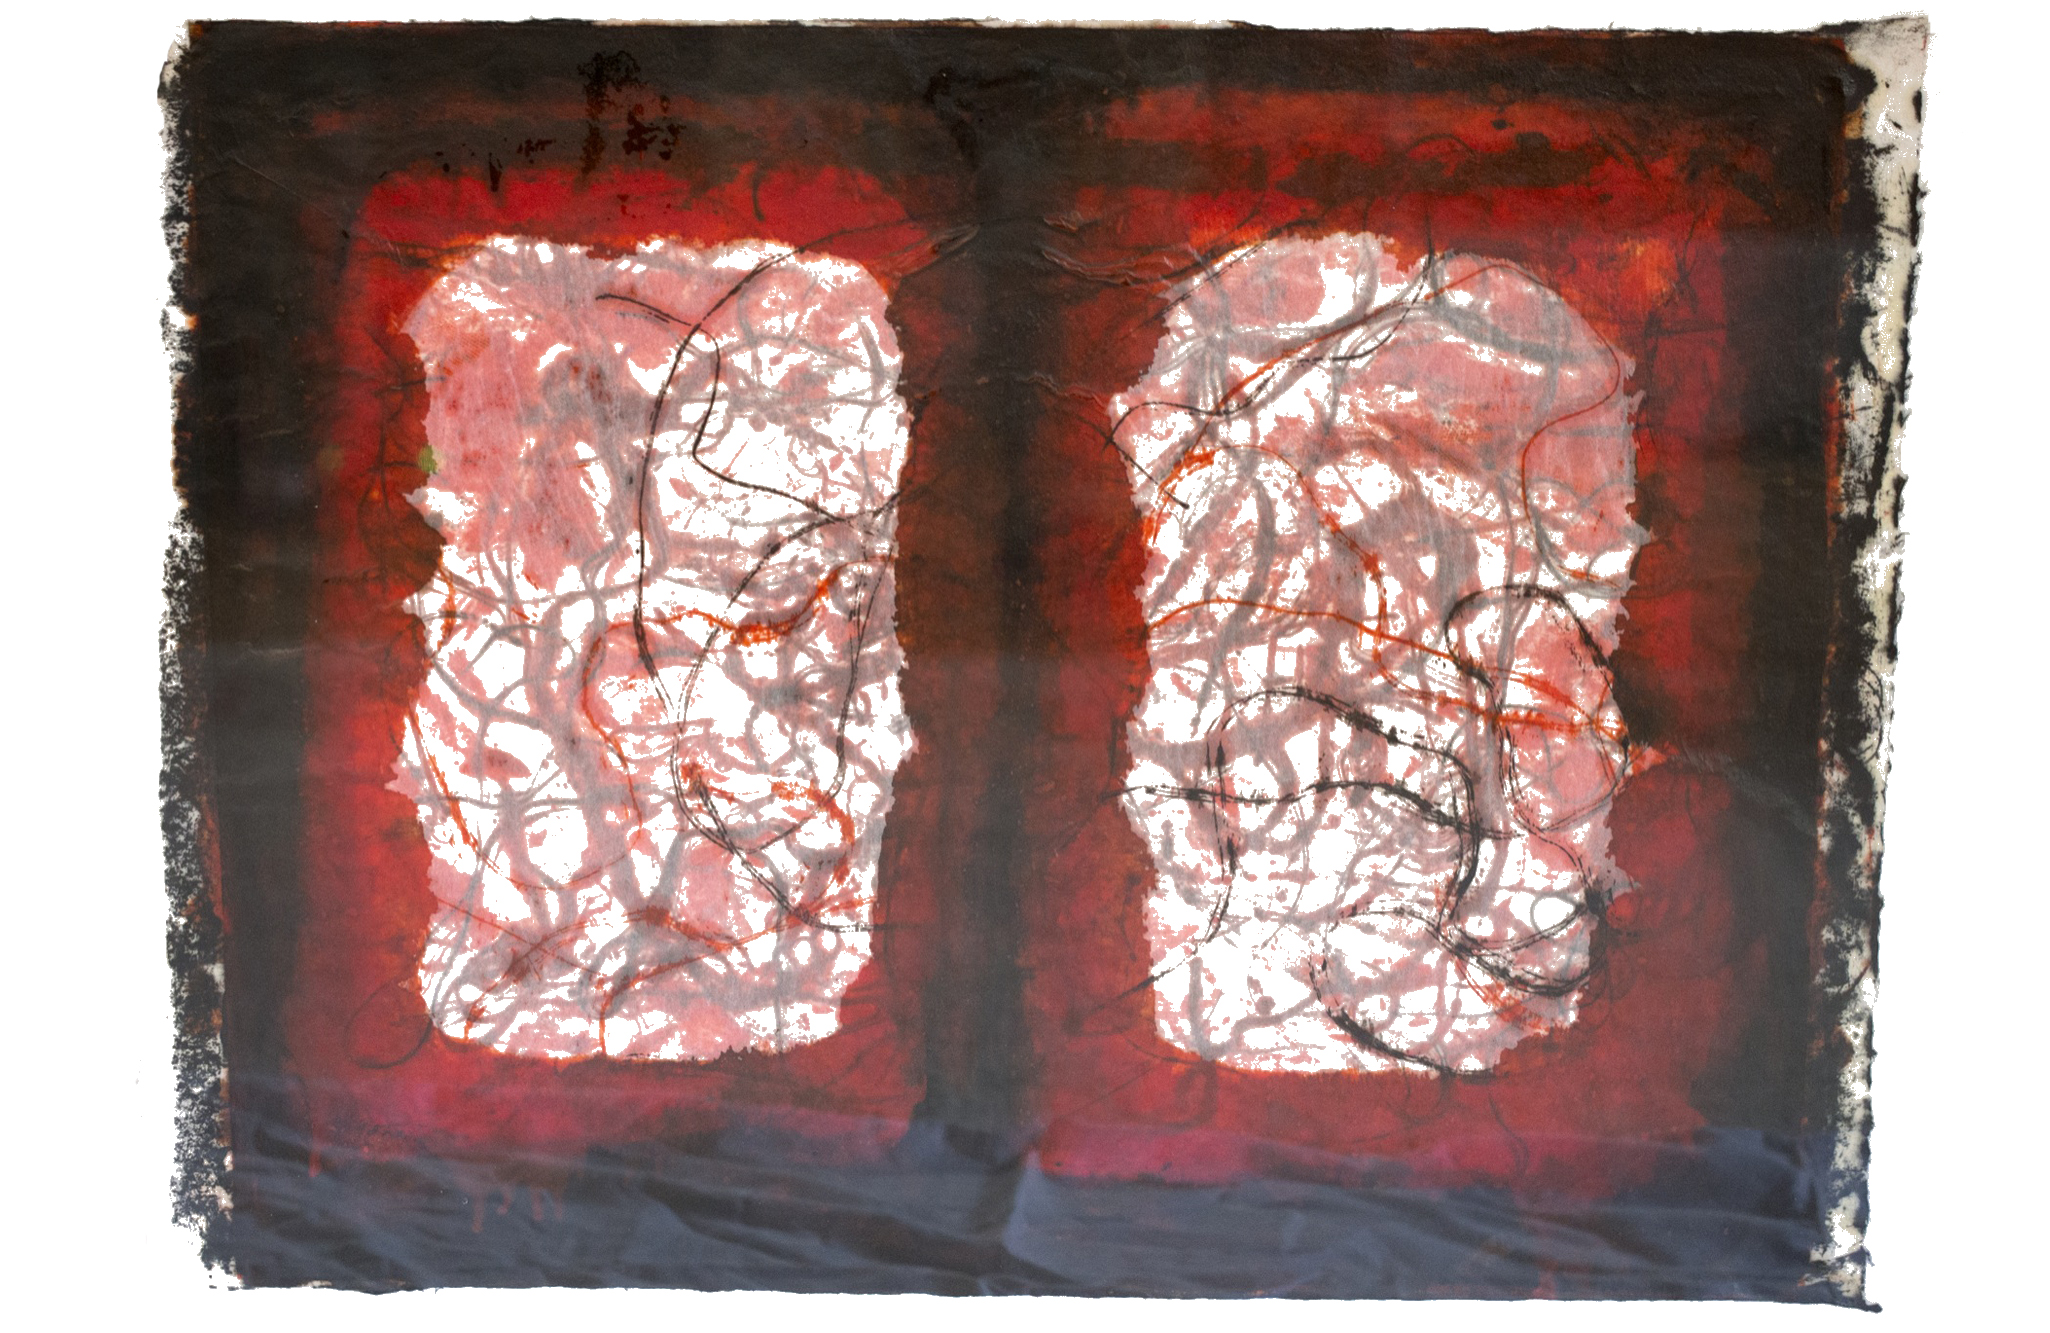 Red Print No. 3